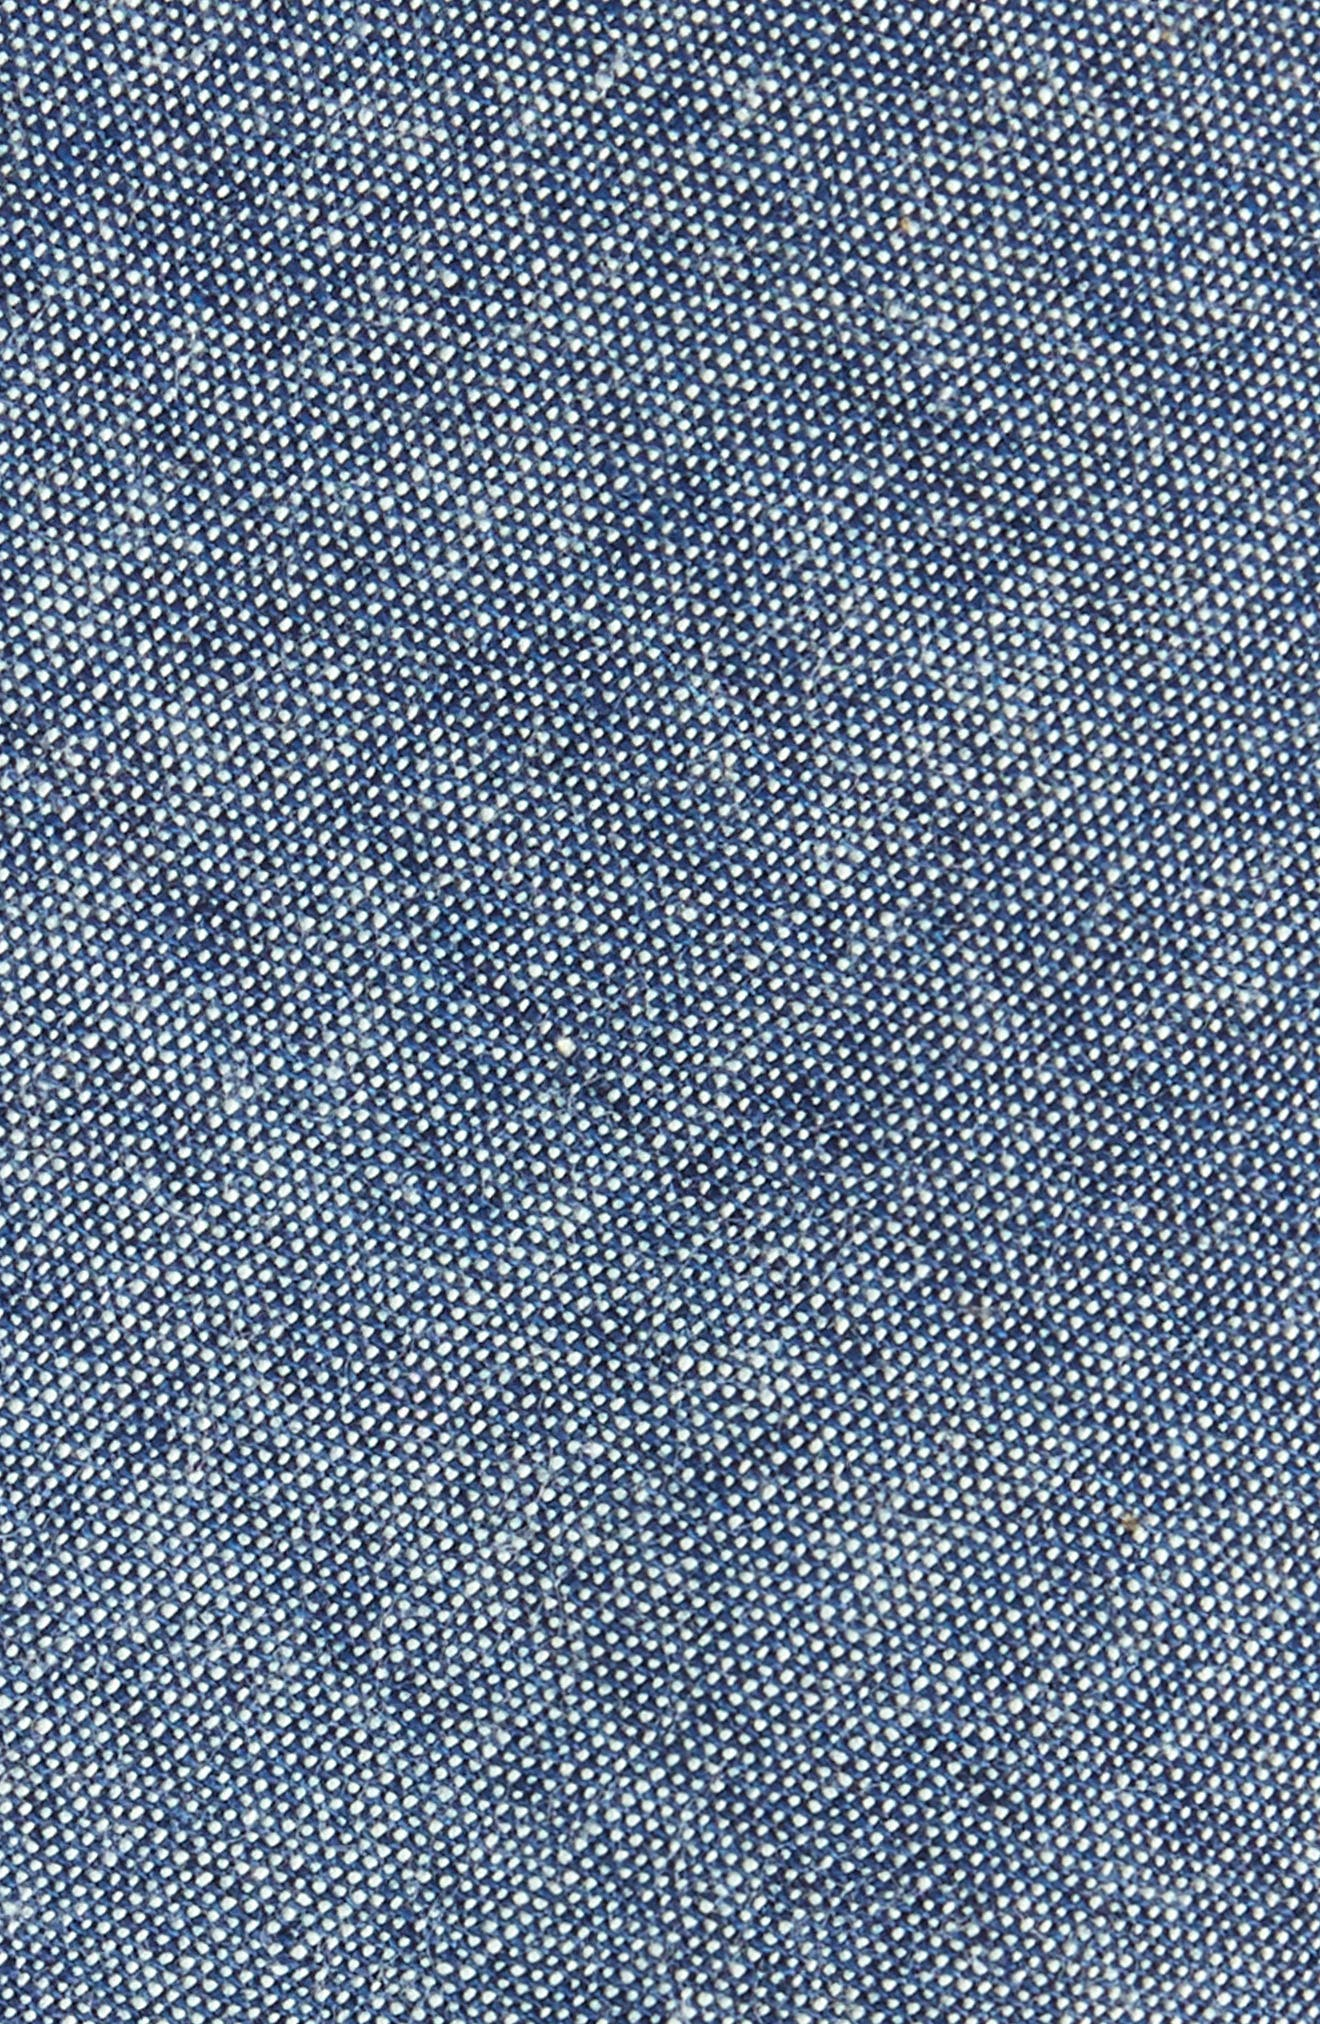 Marled Cotton Skinny Tie,                             Alternate thumbnail 2, color,